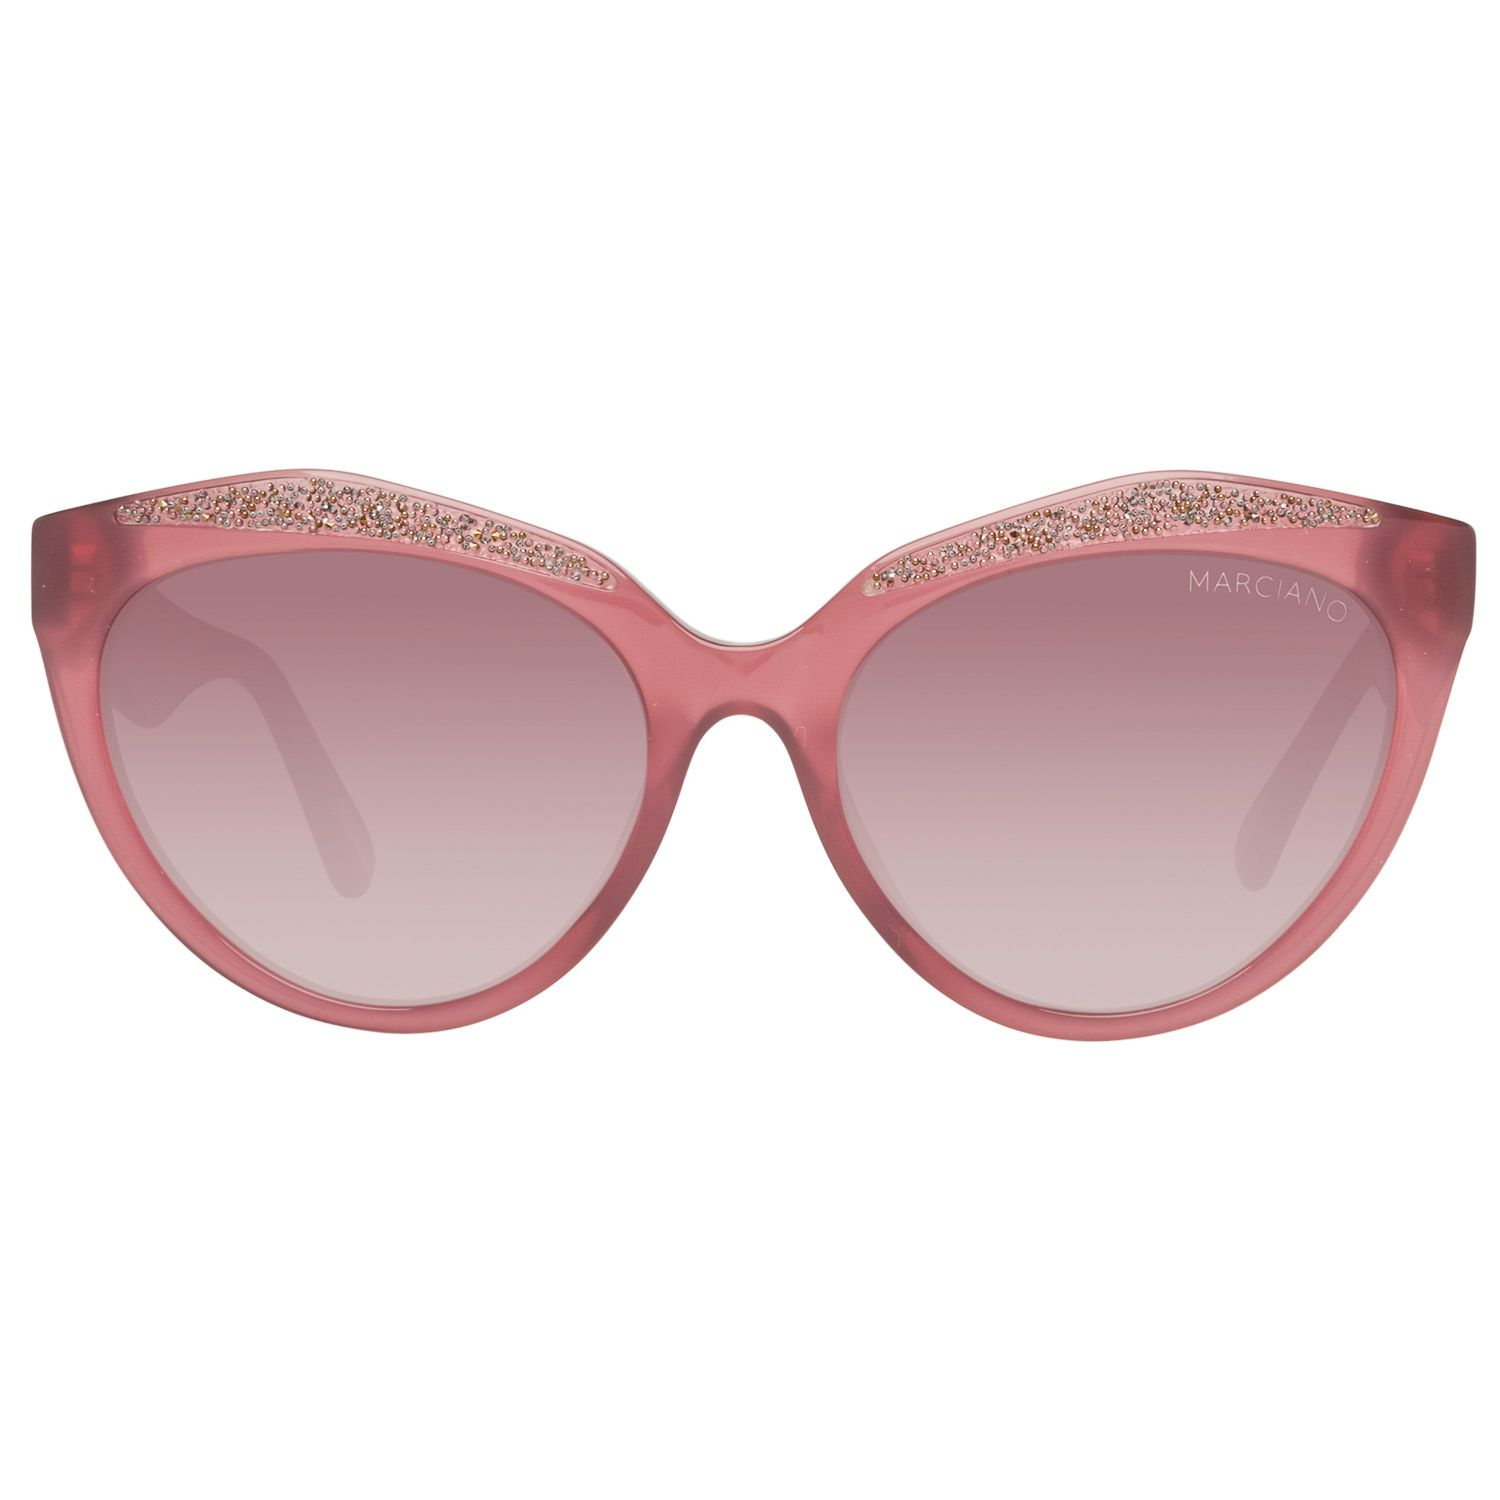 Guess by Marciano Sunglasses GM0776 75F 56 Women Pink